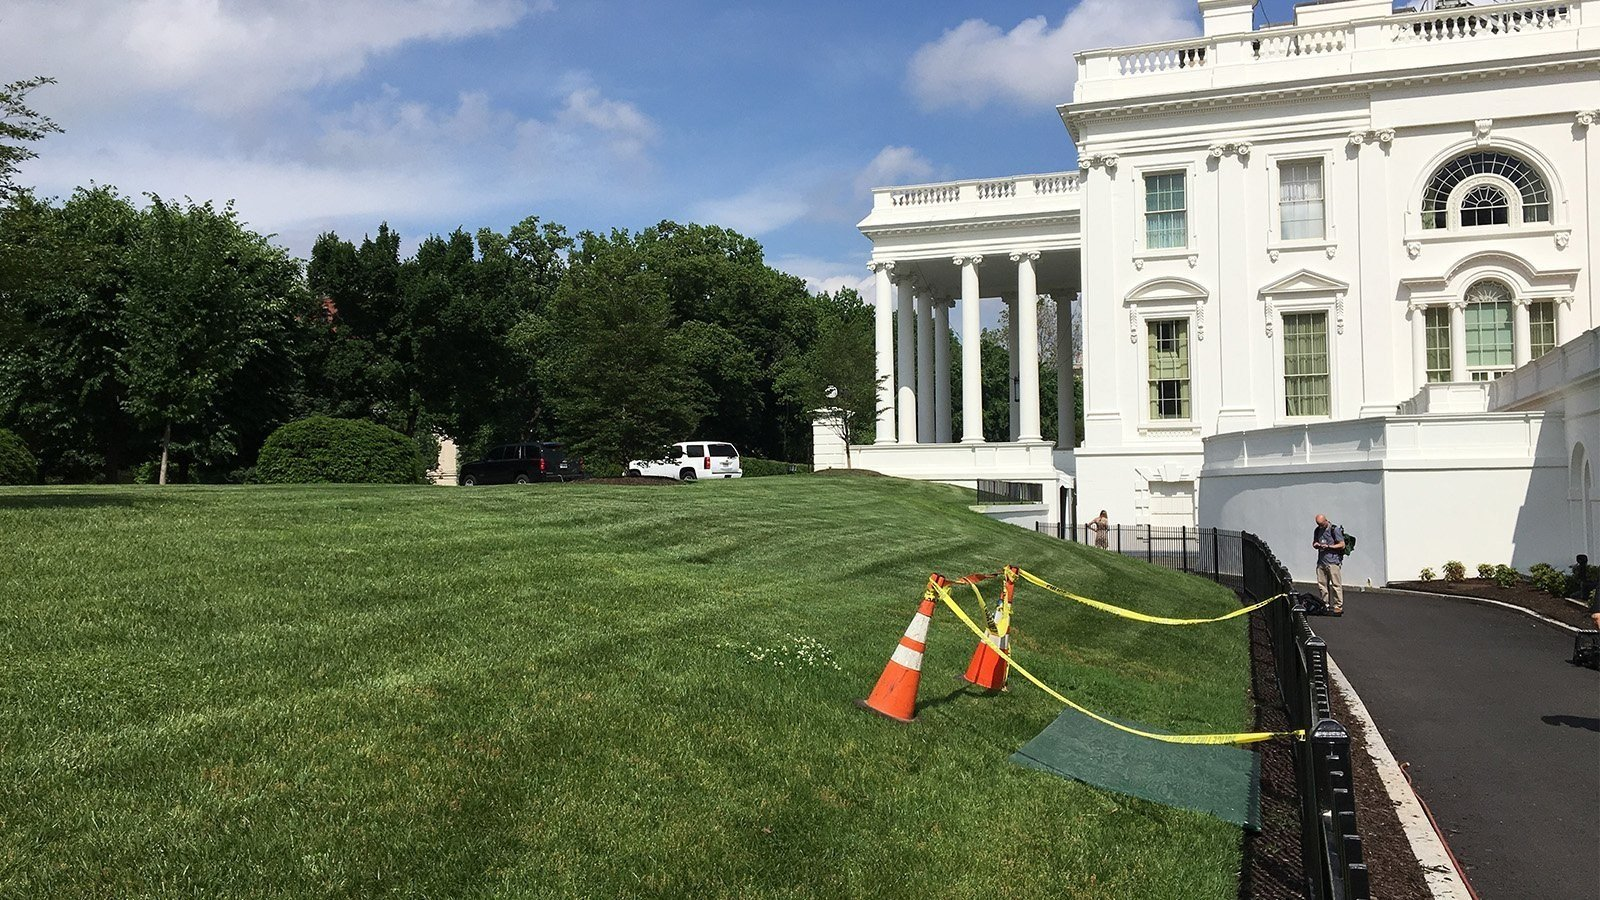 Eyewitnesses first saw the sinkhole on the grassy North Lawn on Saturday, following a week of nearly constant rain in Washington. CNN photo.